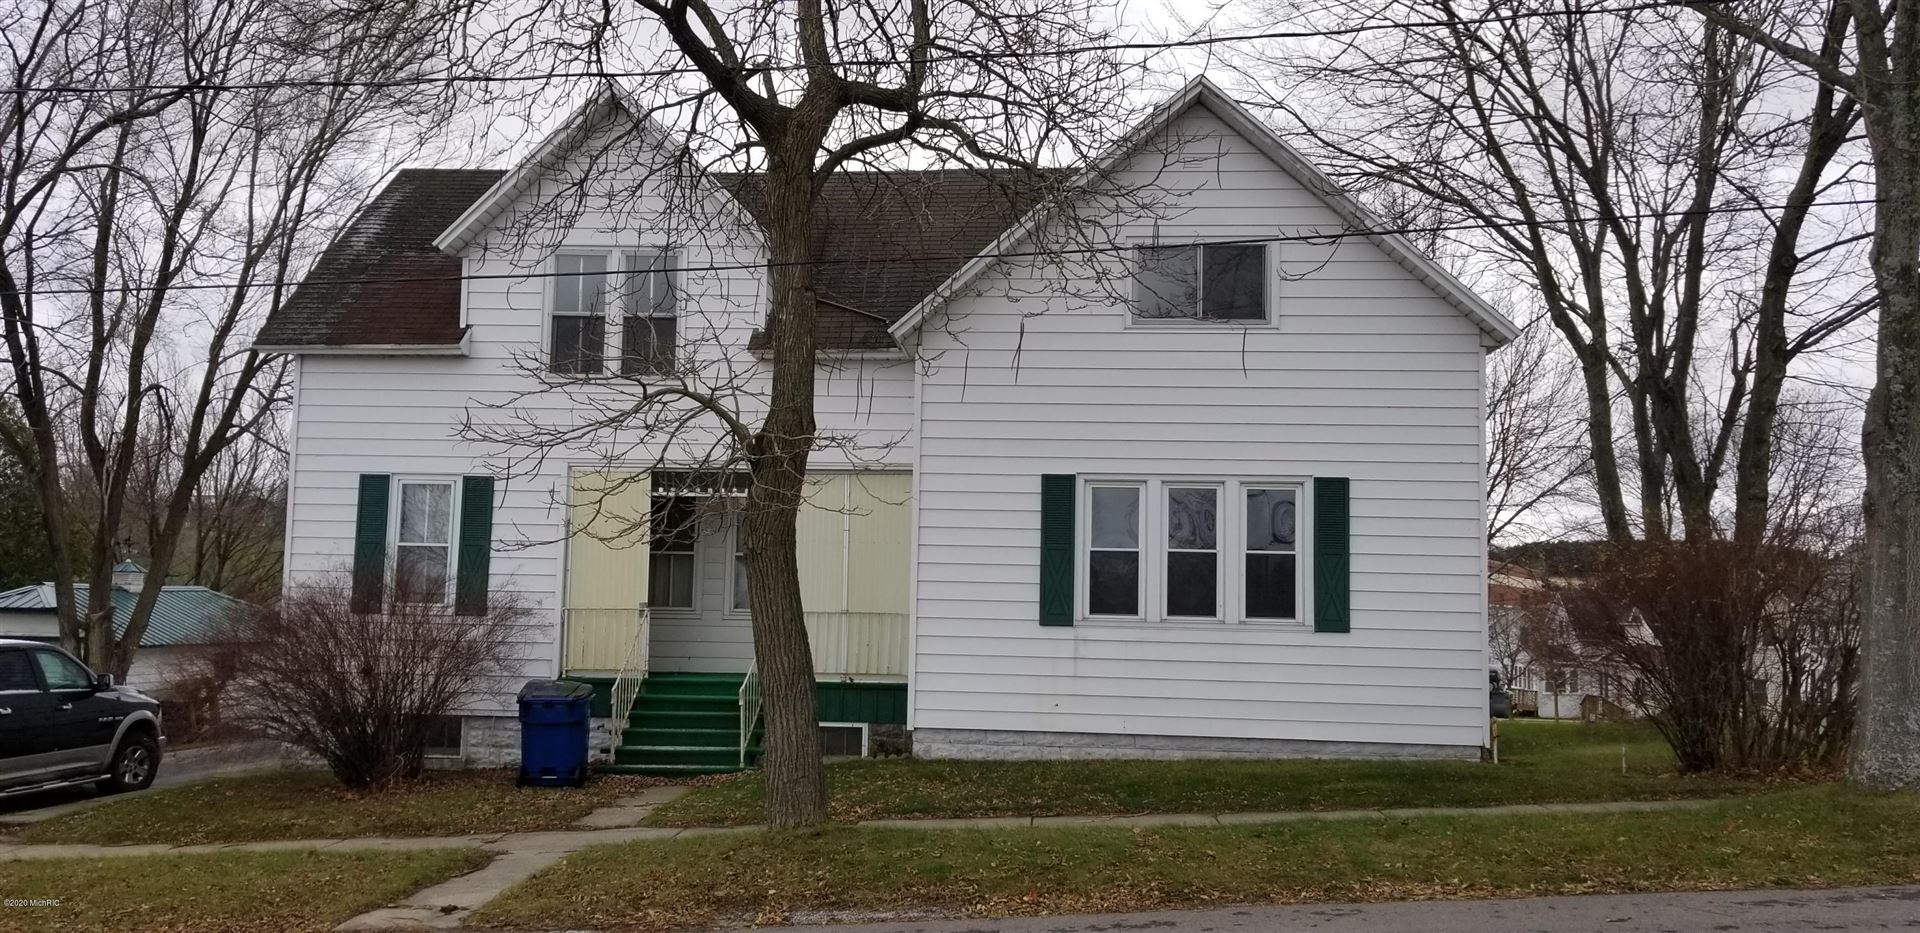 239 Tenth, Manistee, MI 49660 - MLS#: 20047866